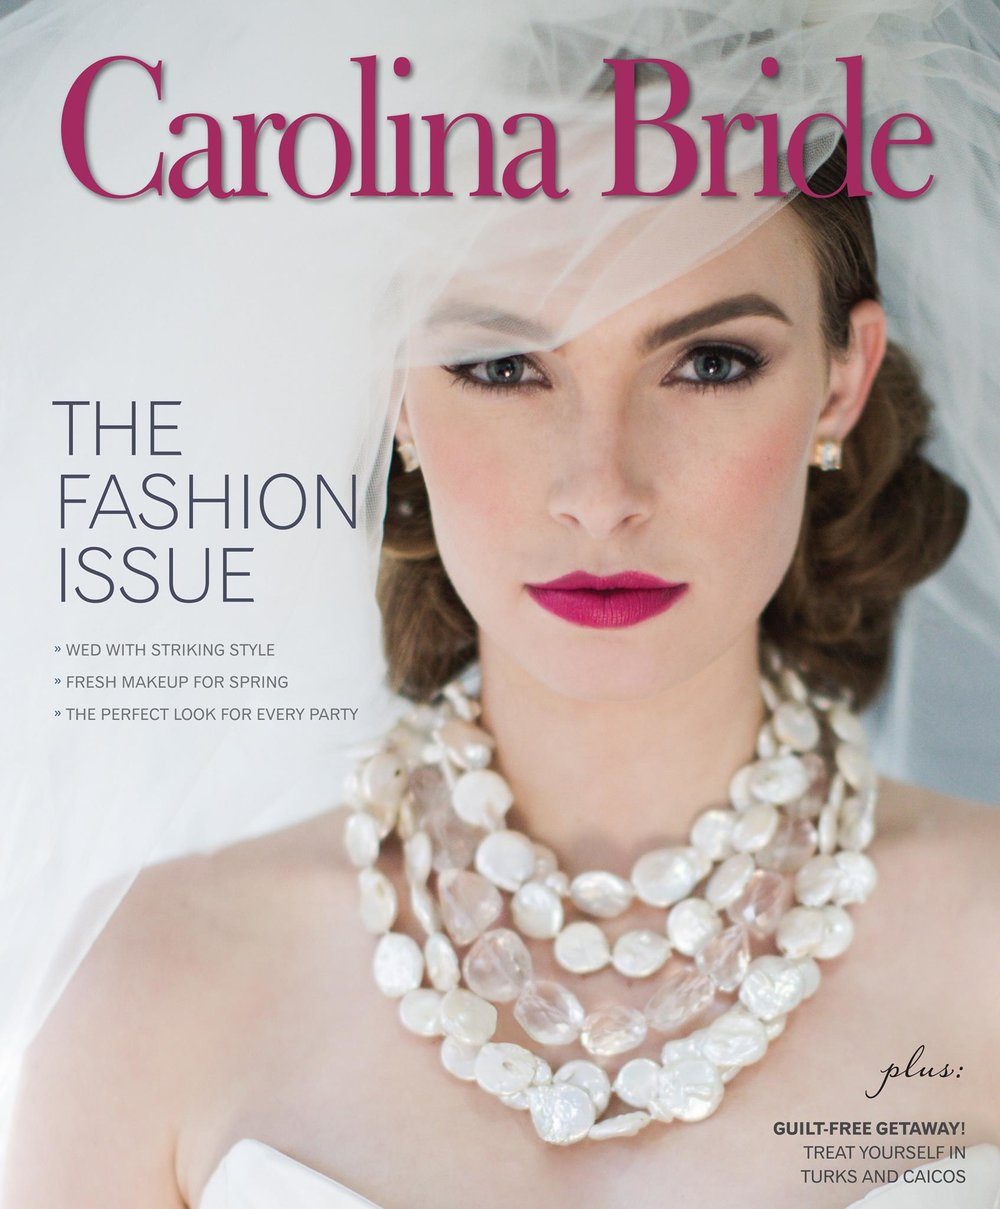 Carolina Bride: The Fashion Issue -